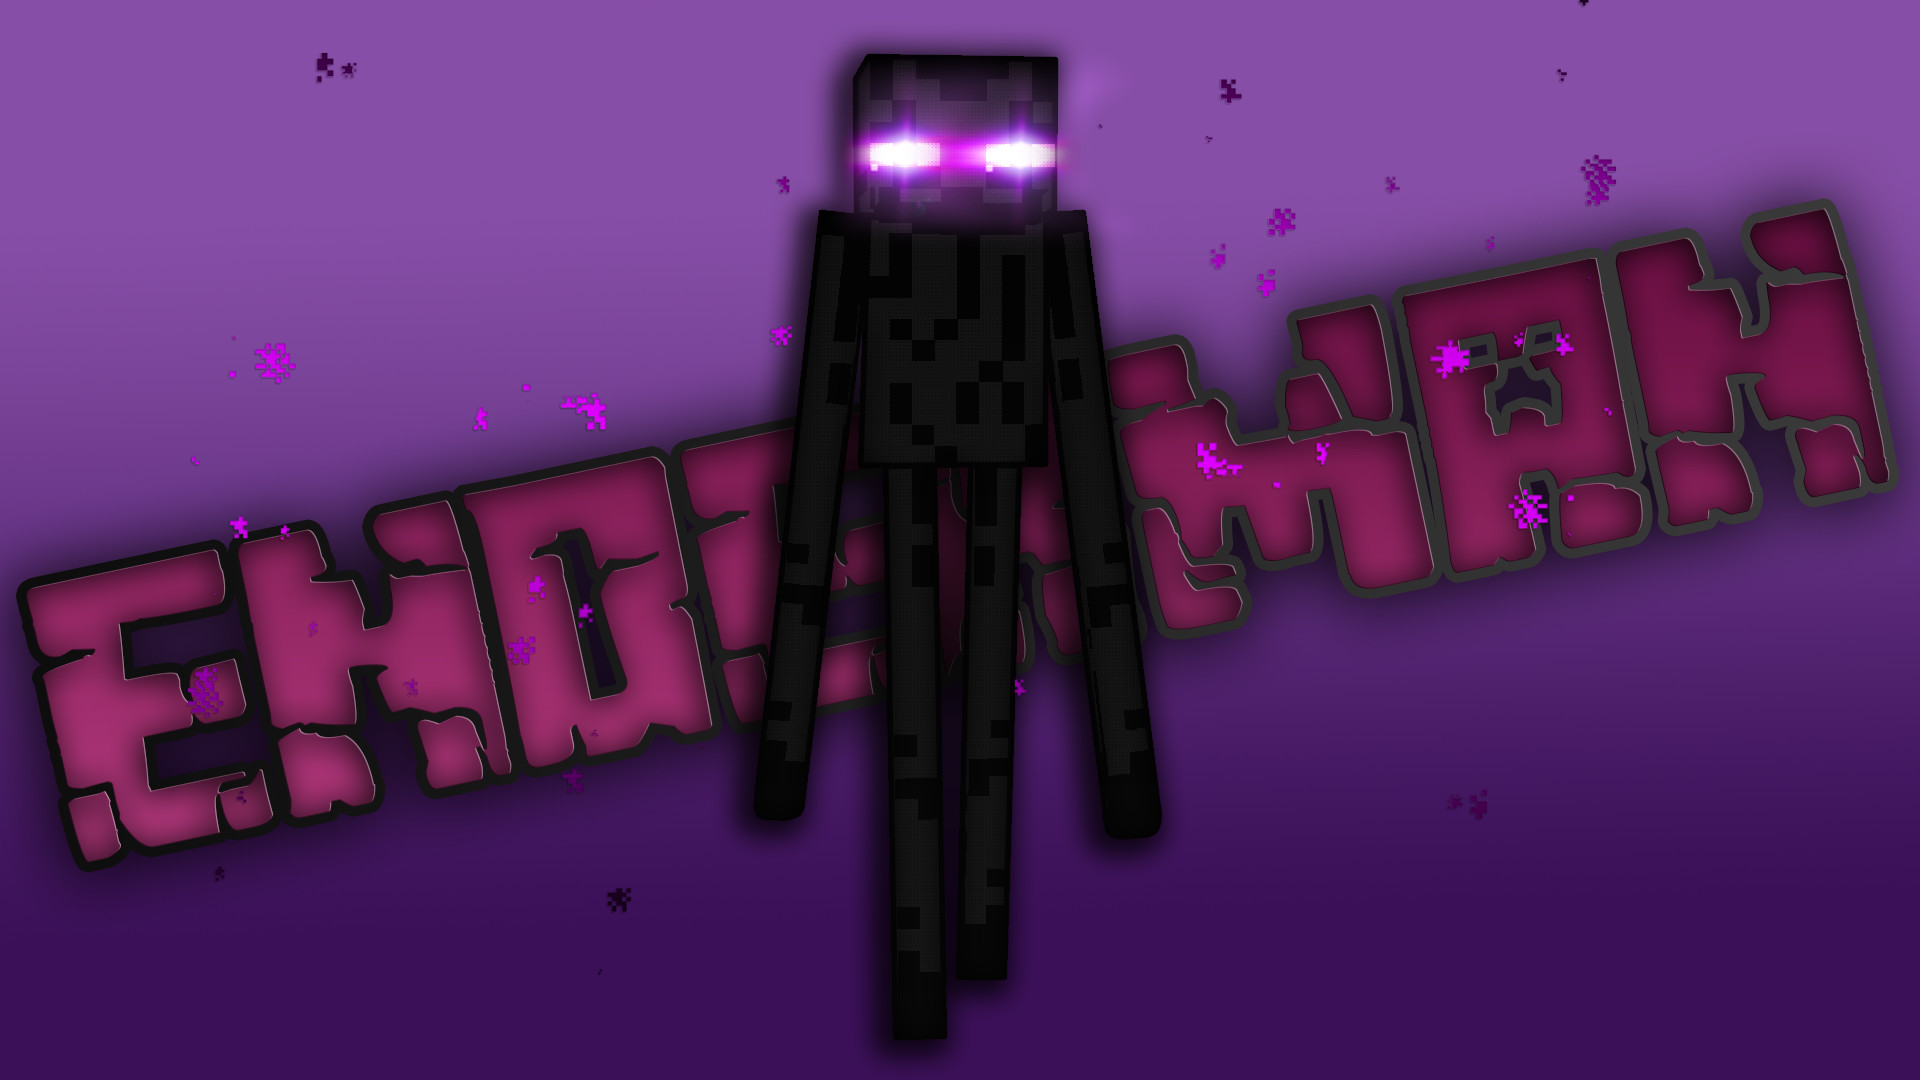 Minecraft Enderman Wallpaper High Quality with High Definition Wallpaper  Resolution px 1.19 MB Games Enderdragon